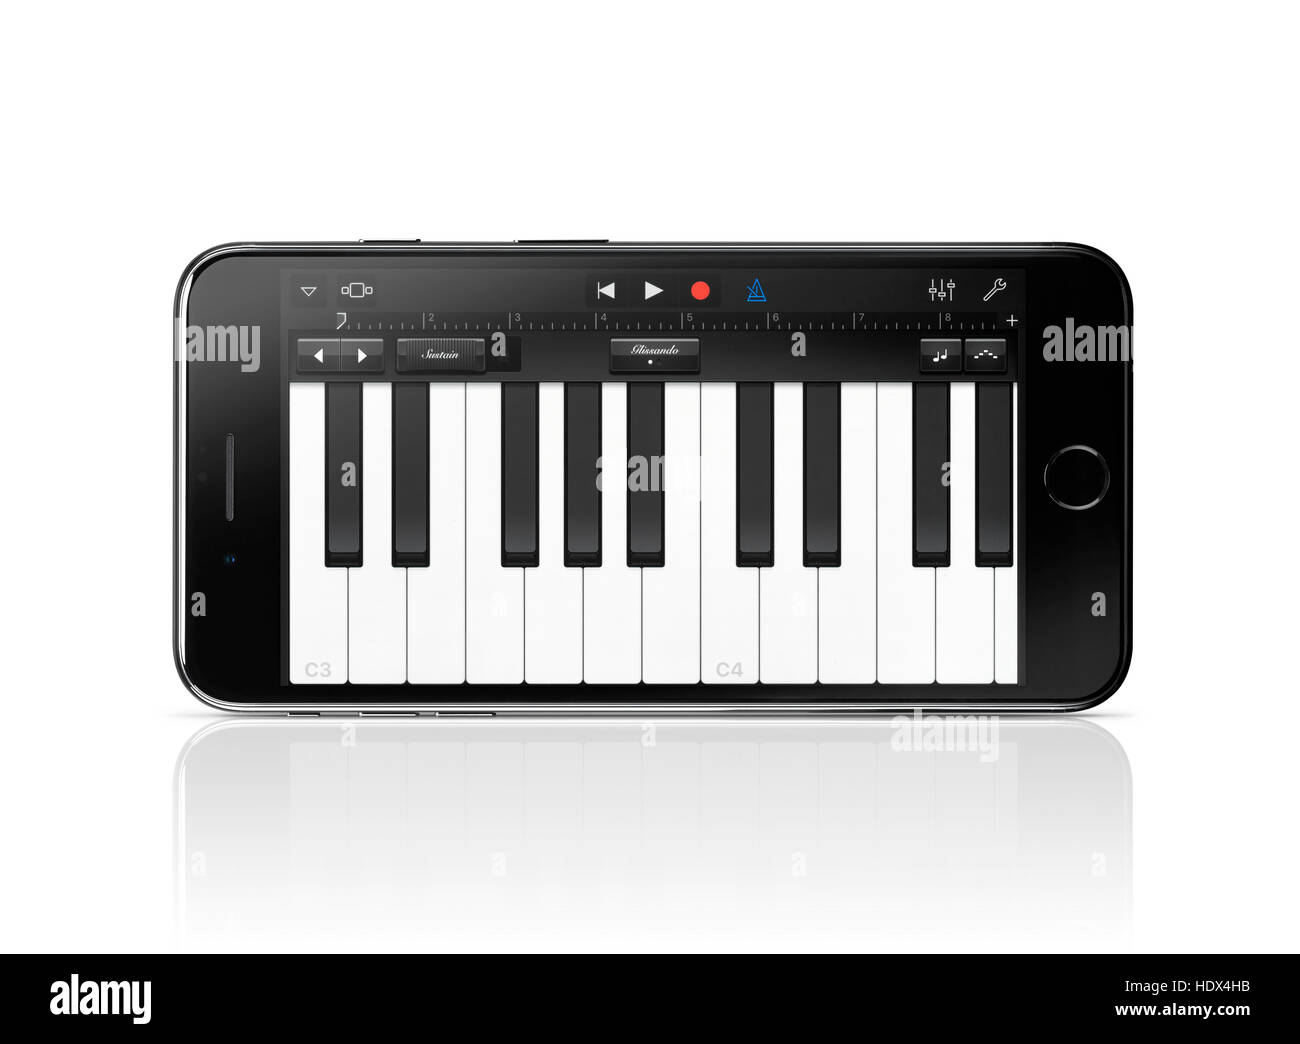 Apple iPhone 7 Plus avec clavier de piano Garage Band musique Apple app sur son affichage isolé sur fond blanc Photo Stock